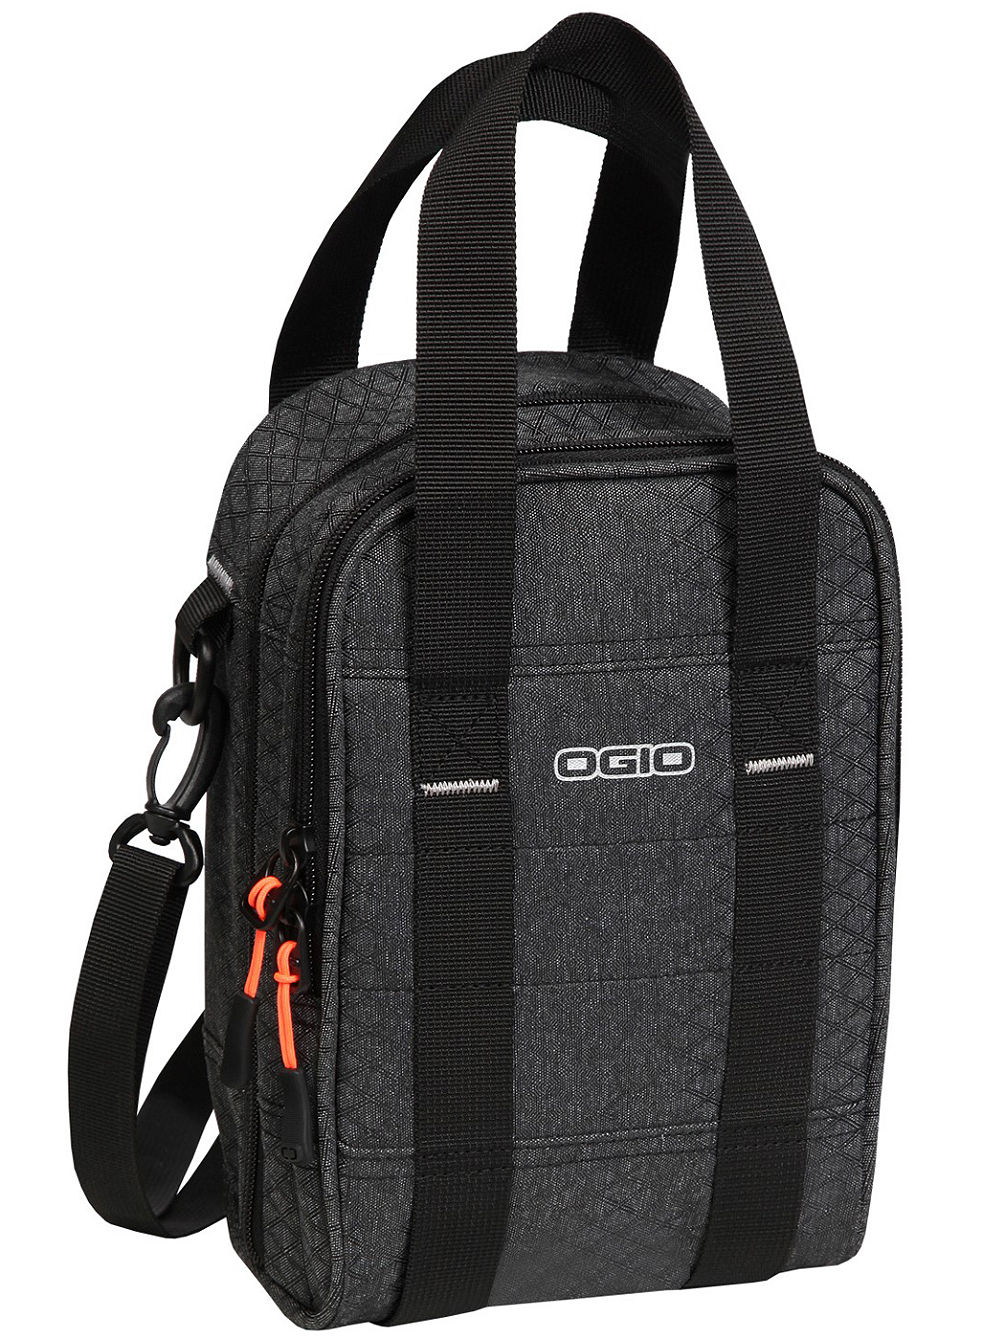 ogio-hogo-action-case